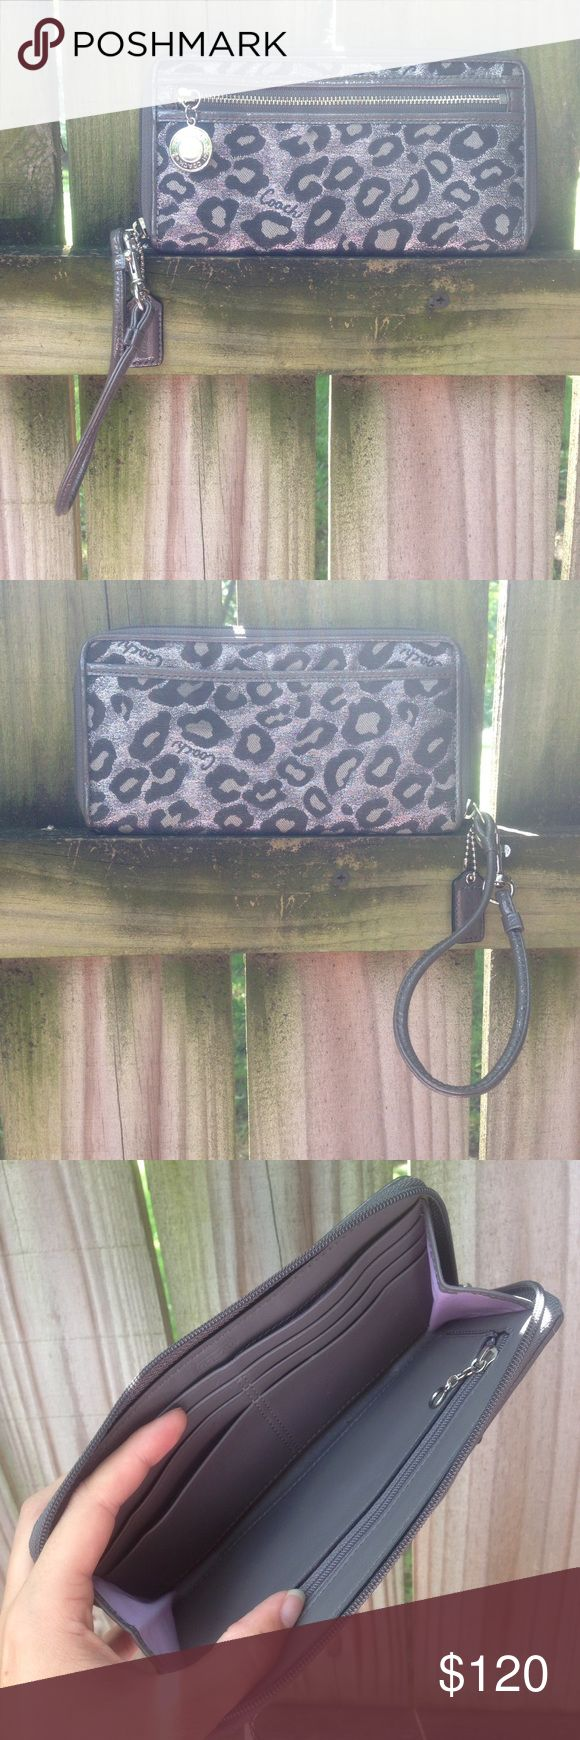 Coach Ocelot Large Zip Around Wallet Cheetah Leopa NWOT. From a smoke-free and pet-free home. Coach Bags Wallets